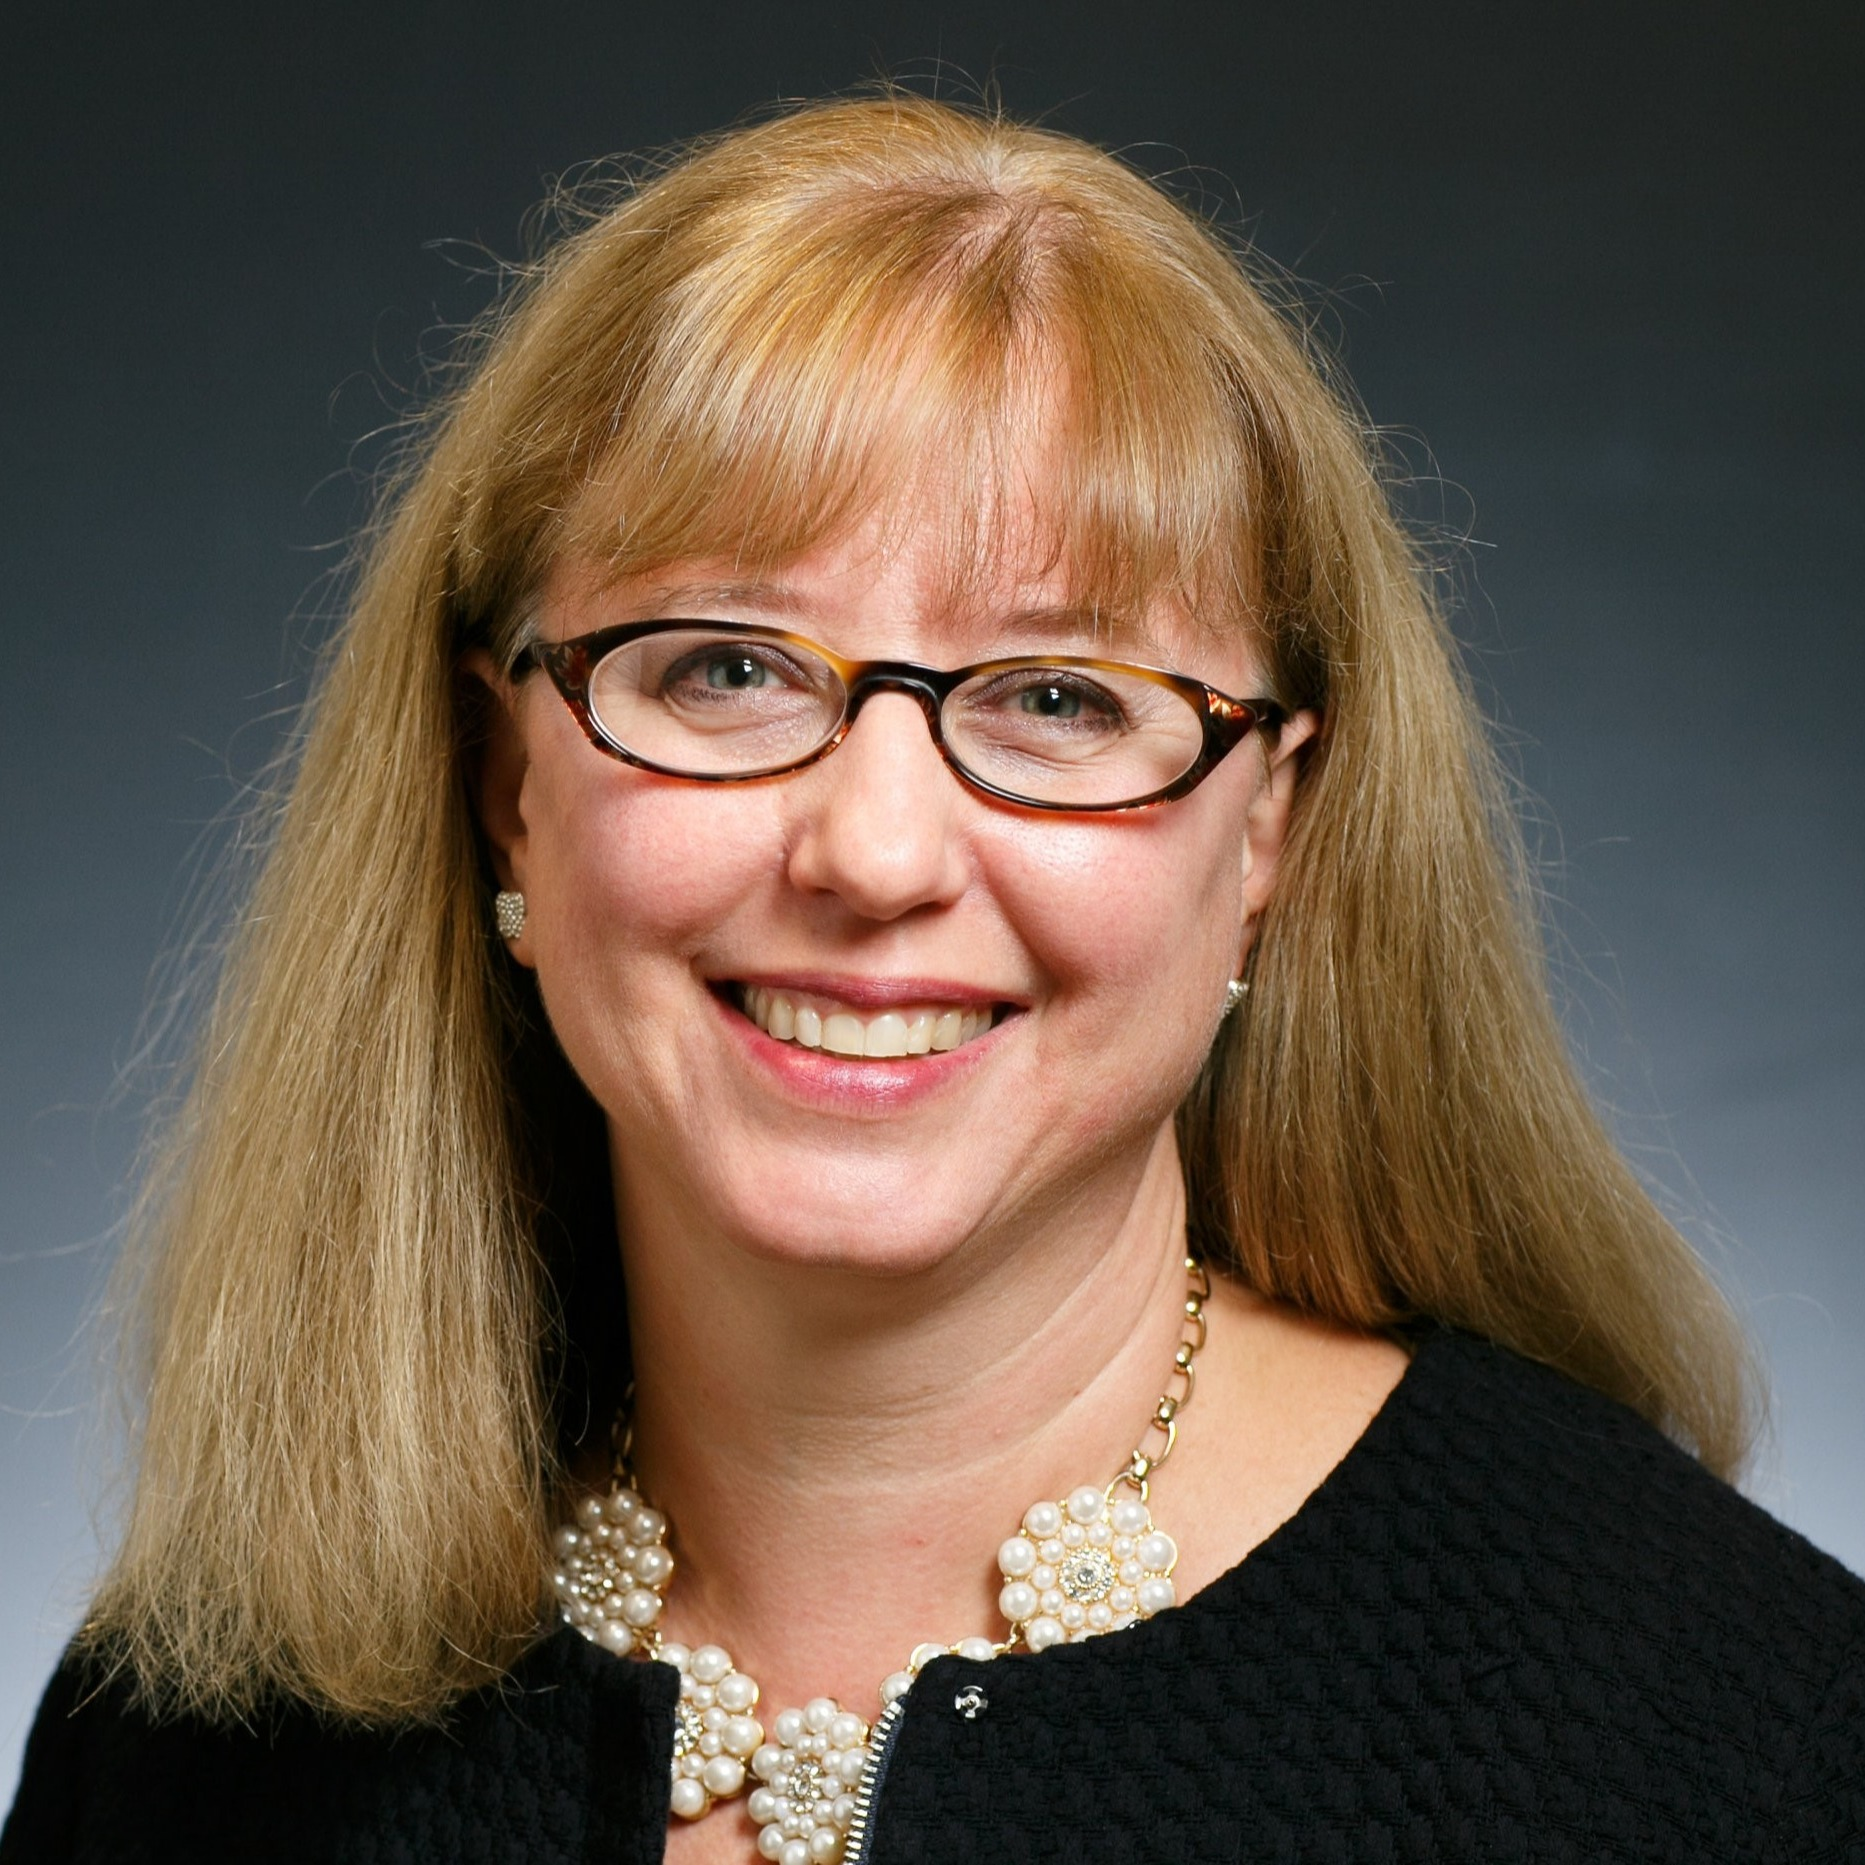 Krista A. Showers, CPA, CEBS, Partner, Recognized for CPE Compliance